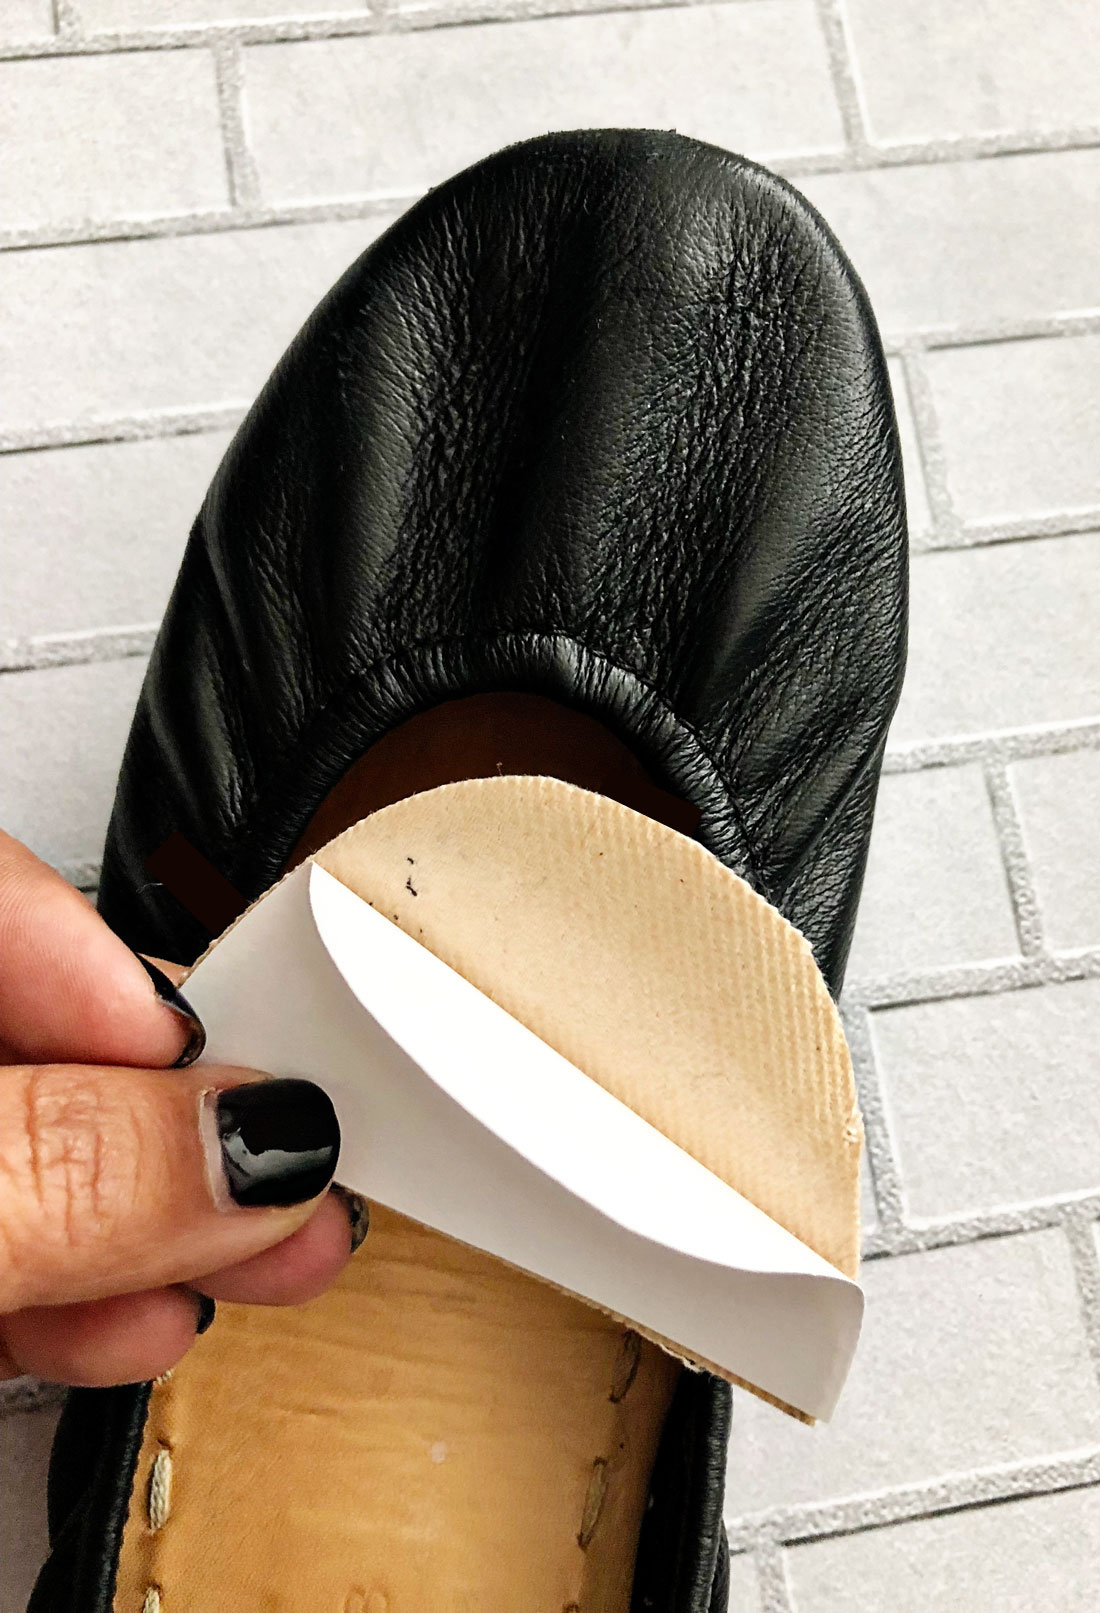 Putting the moleskin on Tieks shoes